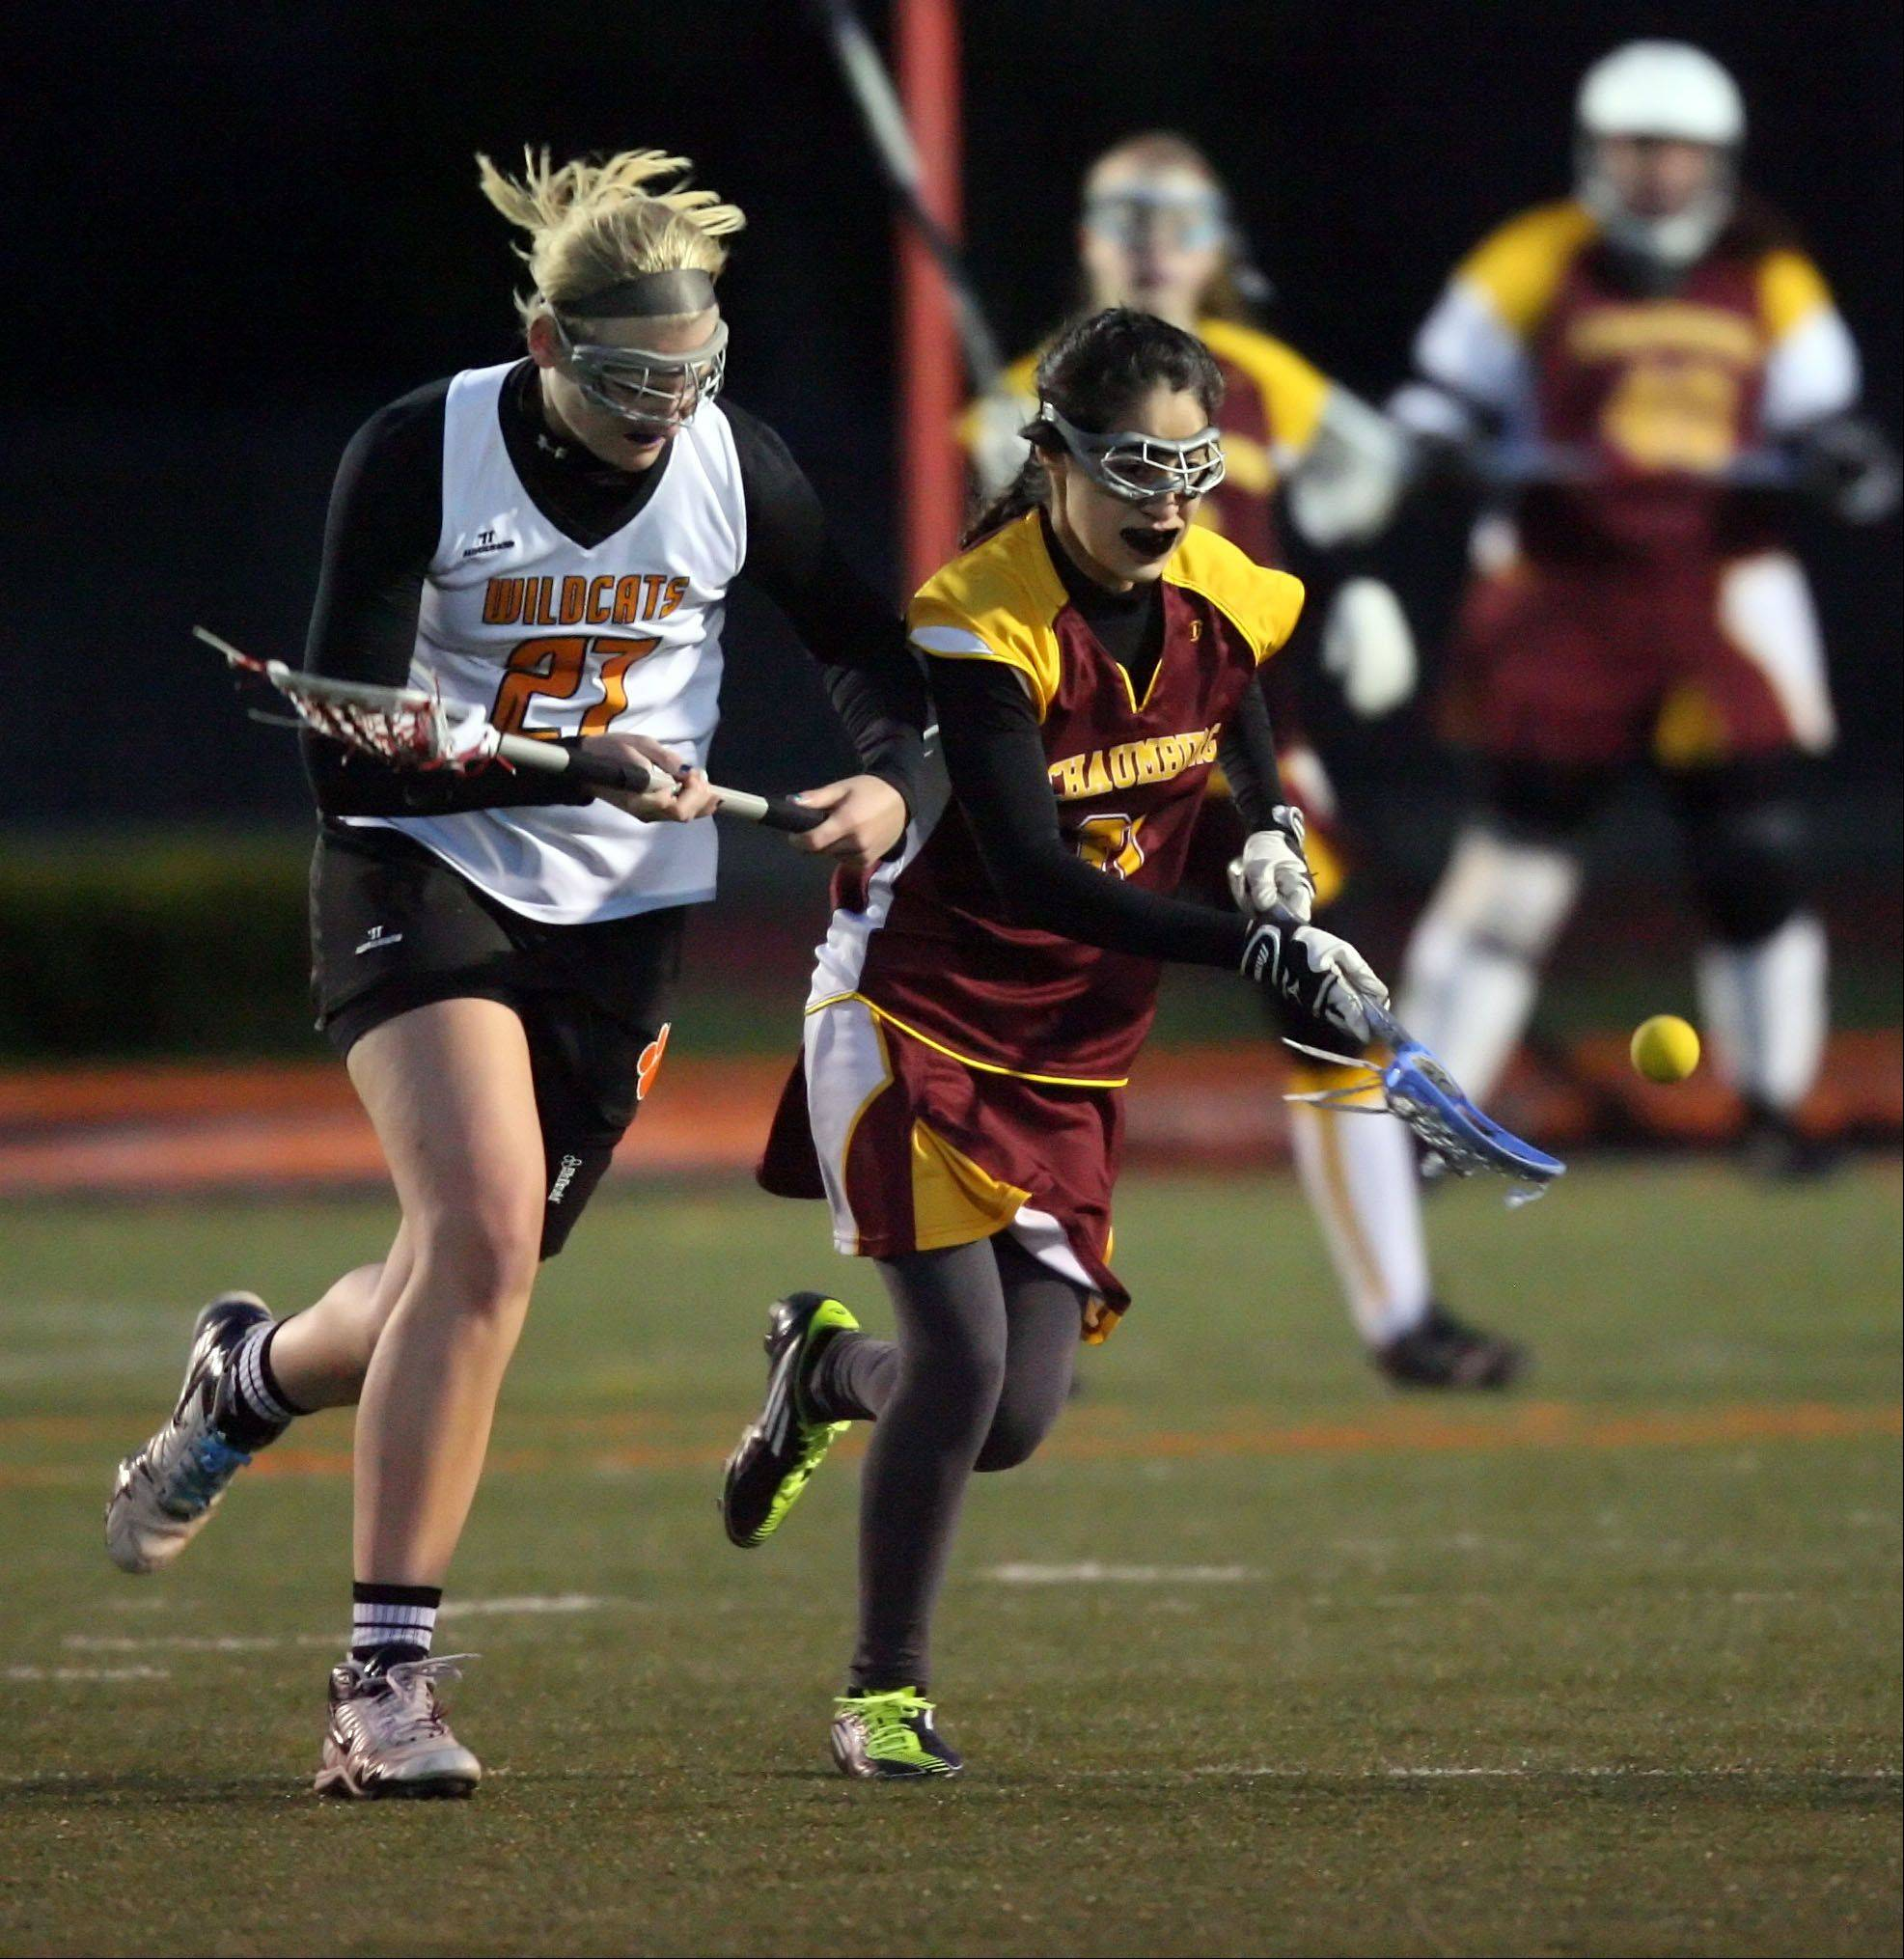 Images from the Libertyville vs. Schaumburg girls lacrosse game on Wednesday, April 4 in Libertyville.